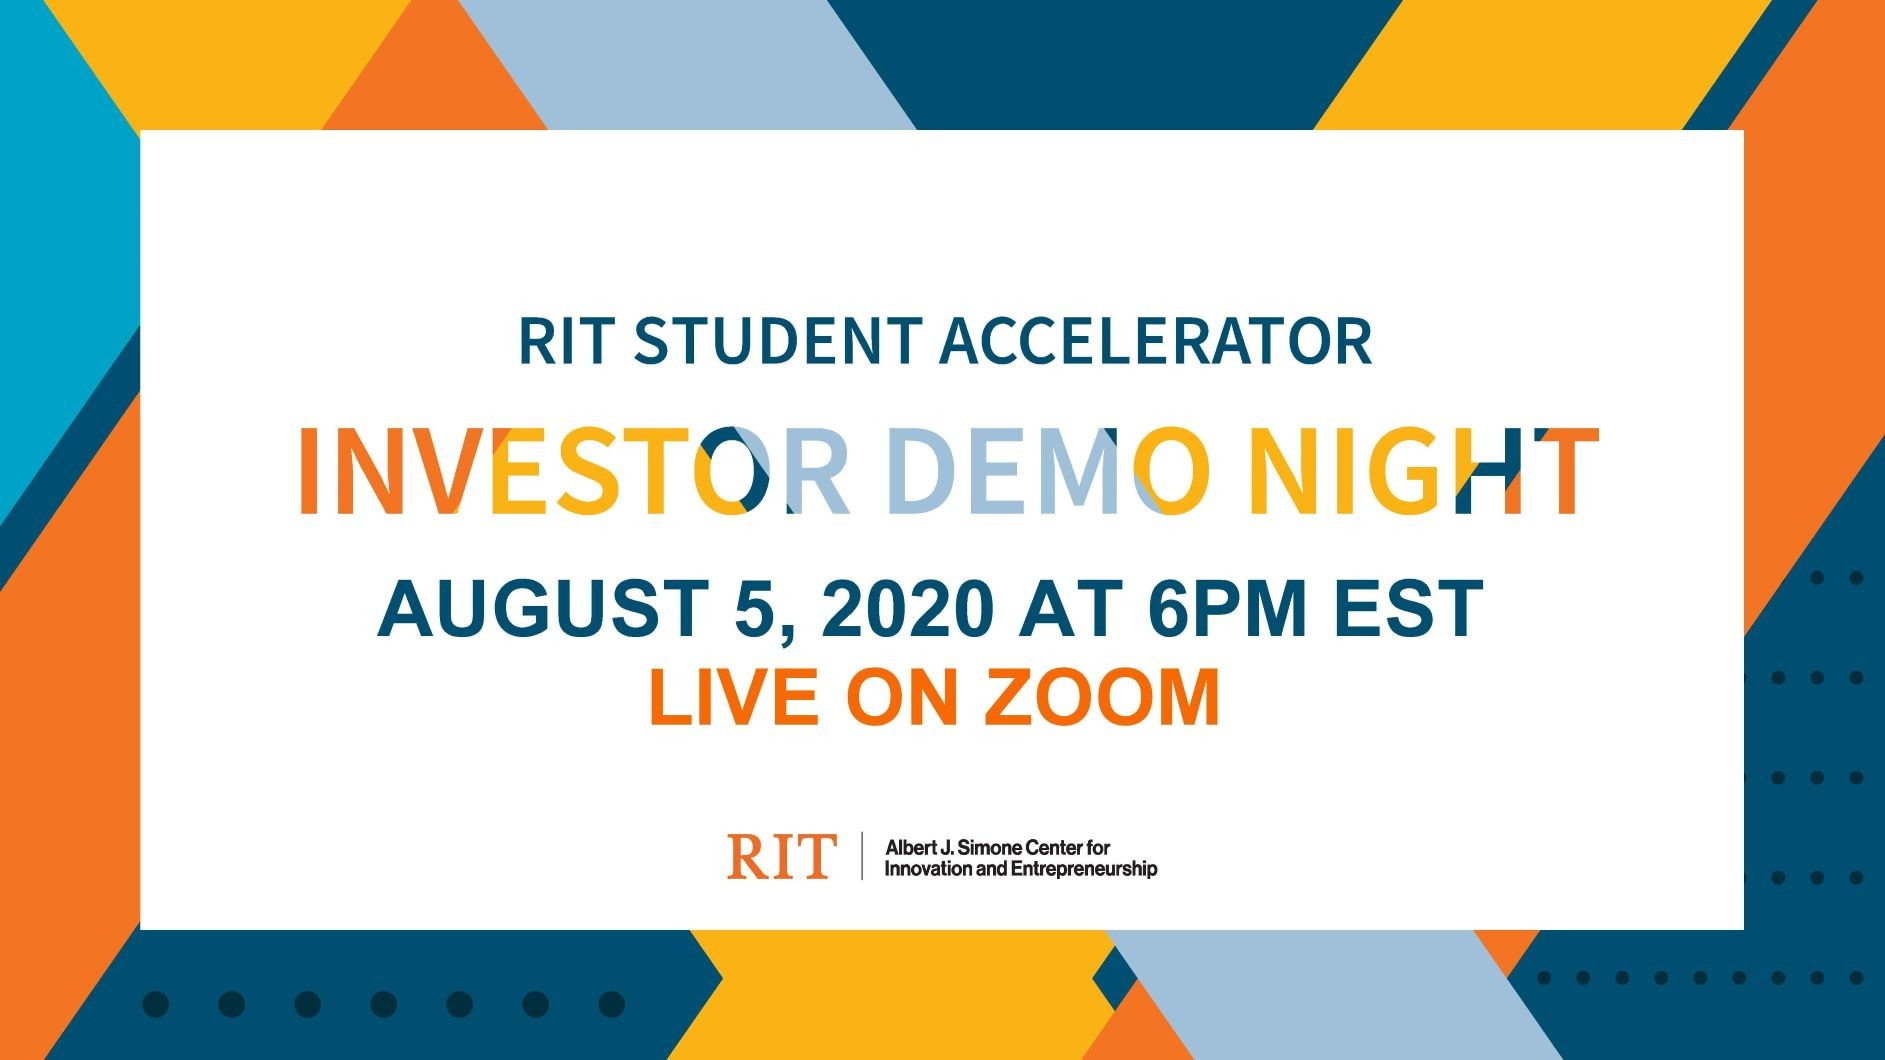 RIT Student Accelerator Investor Demo Night- Live on Zoom